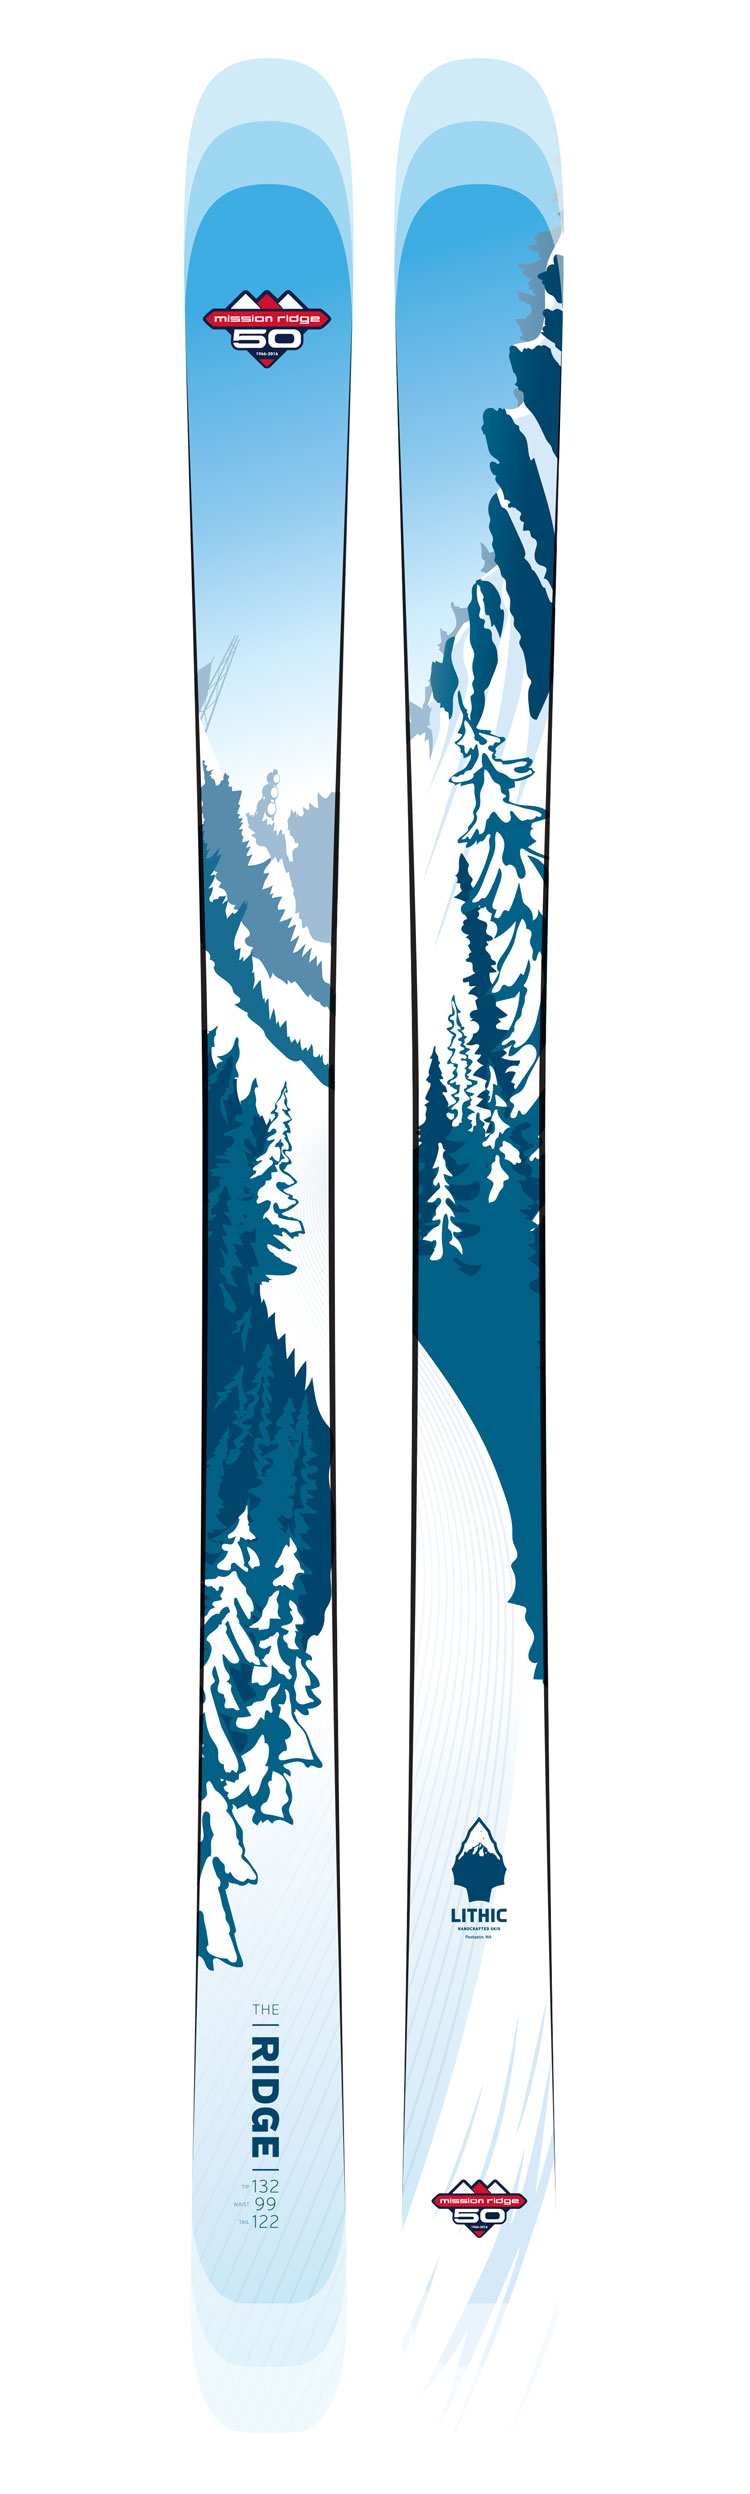 Custom skis featuring an artistic rendering of the Mission Ridge ridgeline.